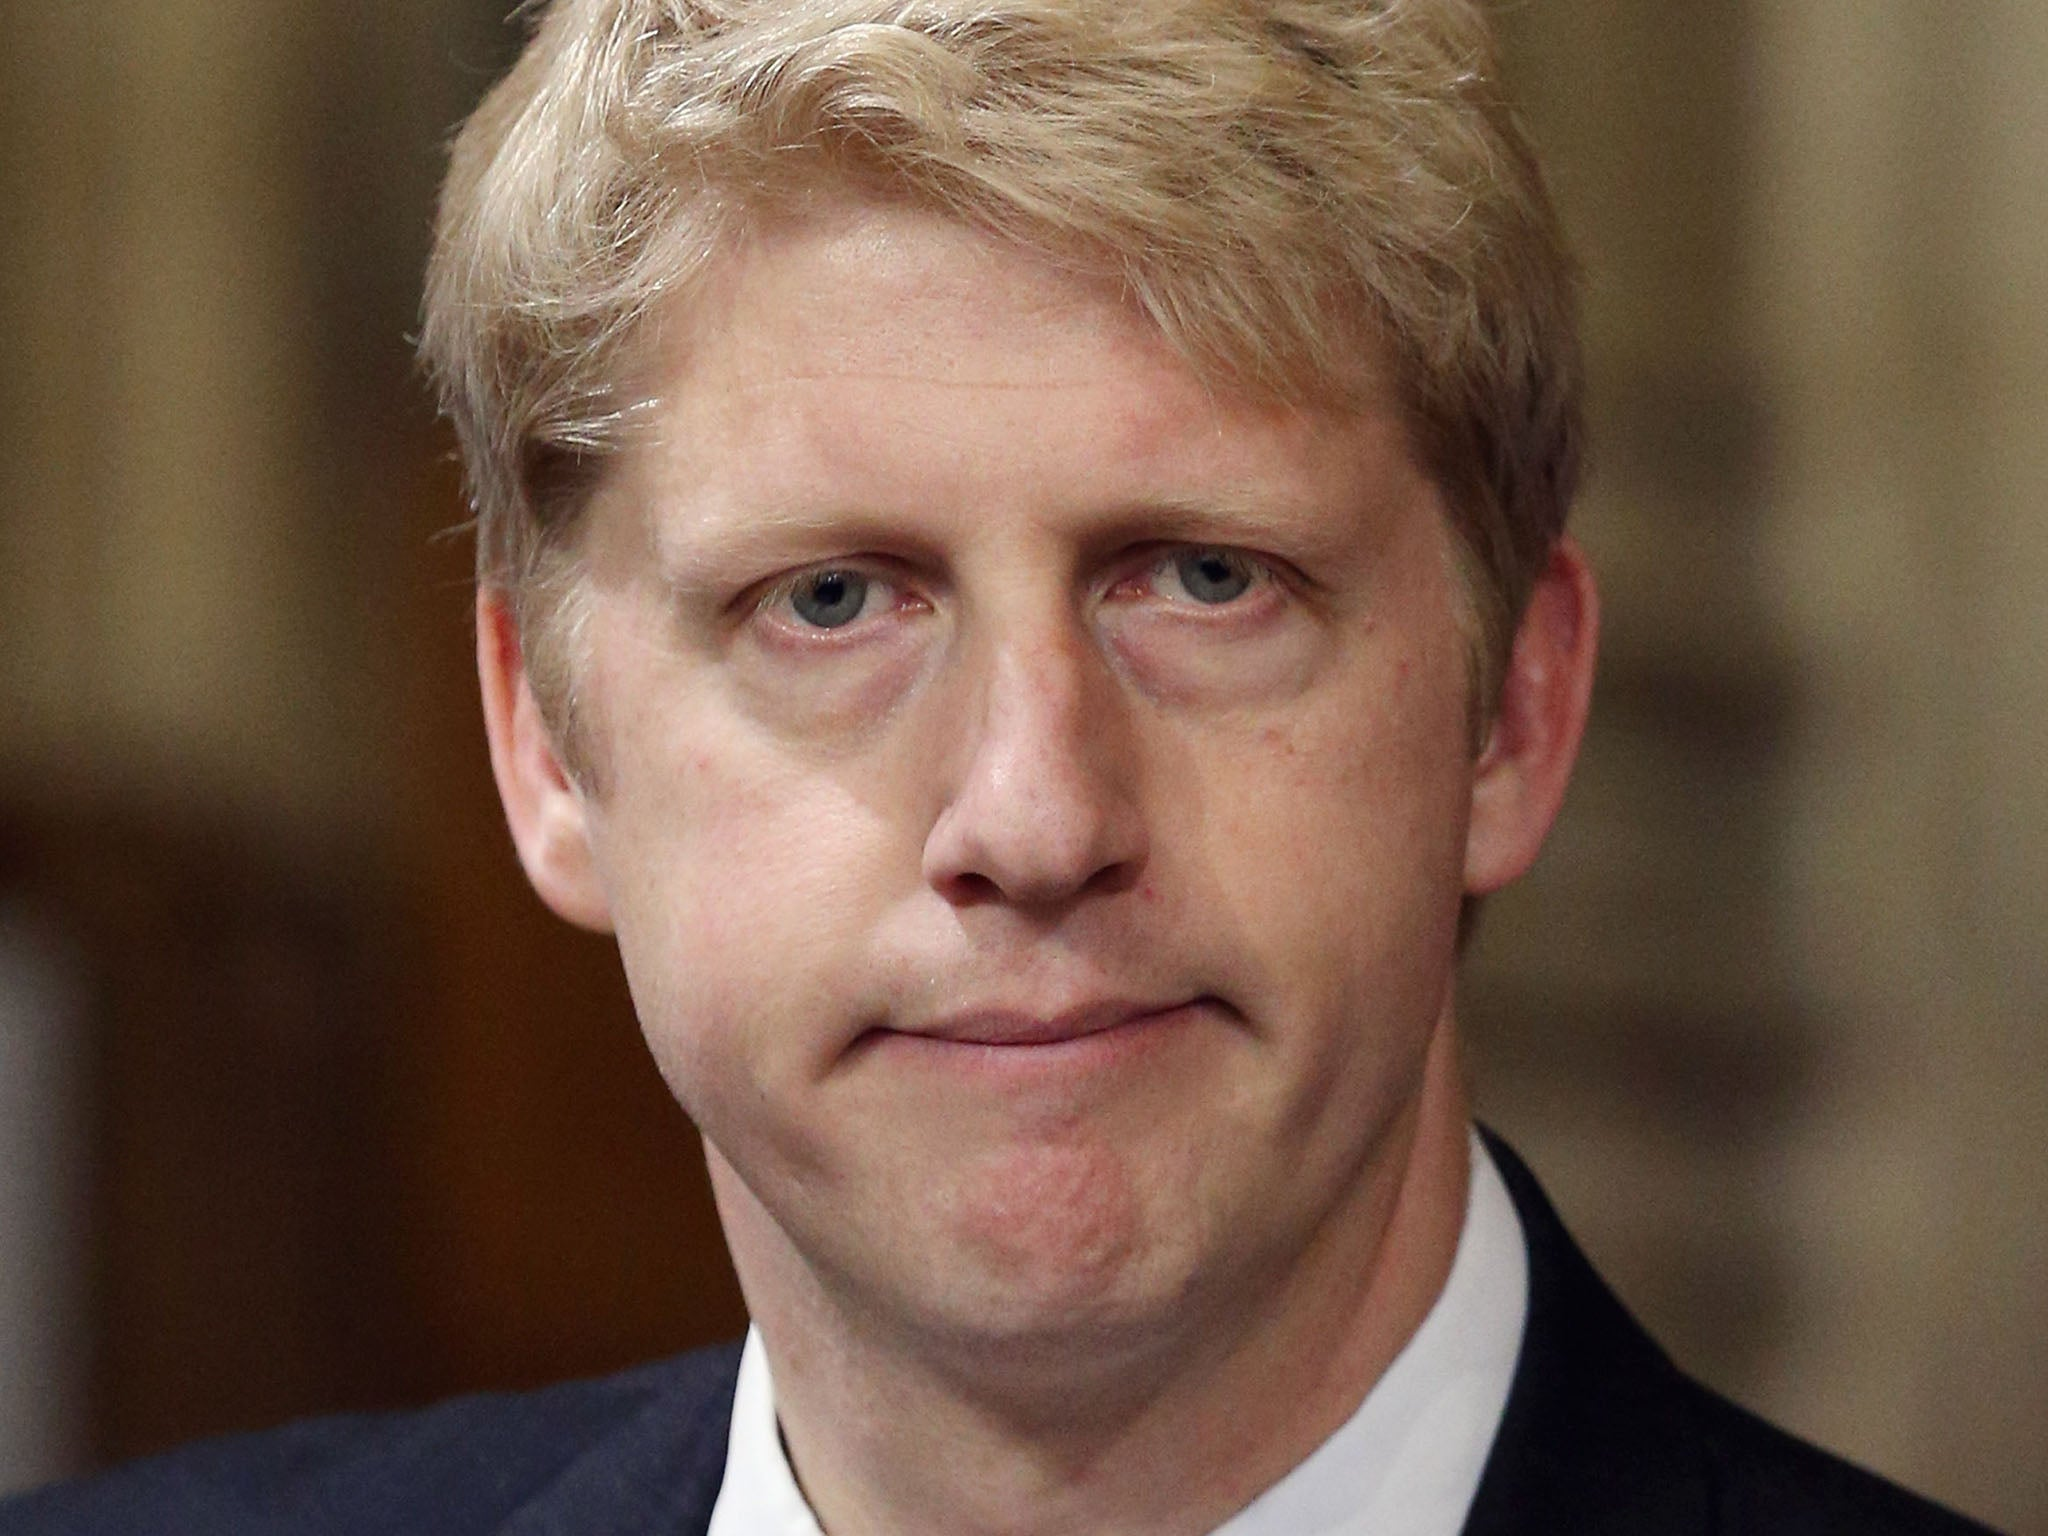 Theresa May was right to demote Jo Johnson he crossed the line